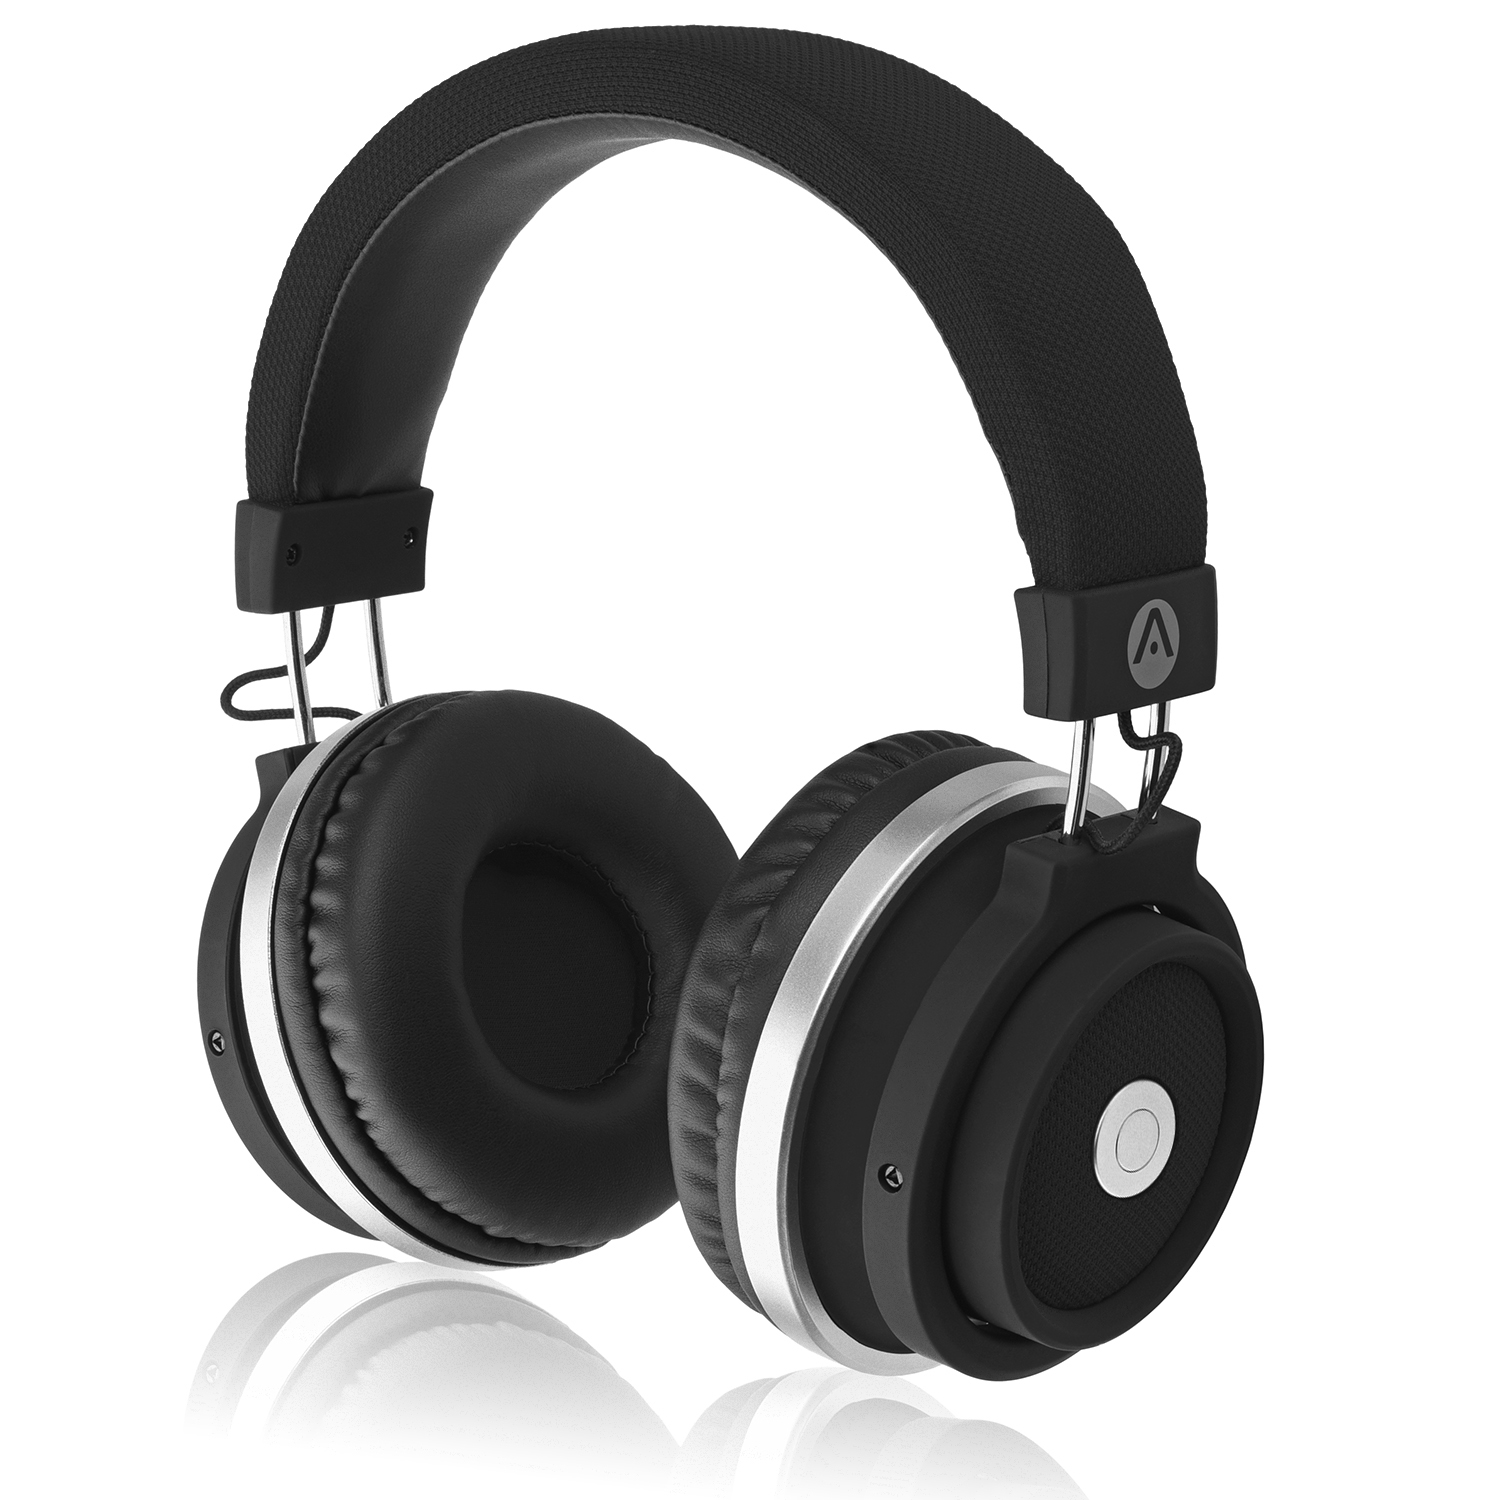 Image for Audiomate Bluetooth Headphones (Black) from Circuit City